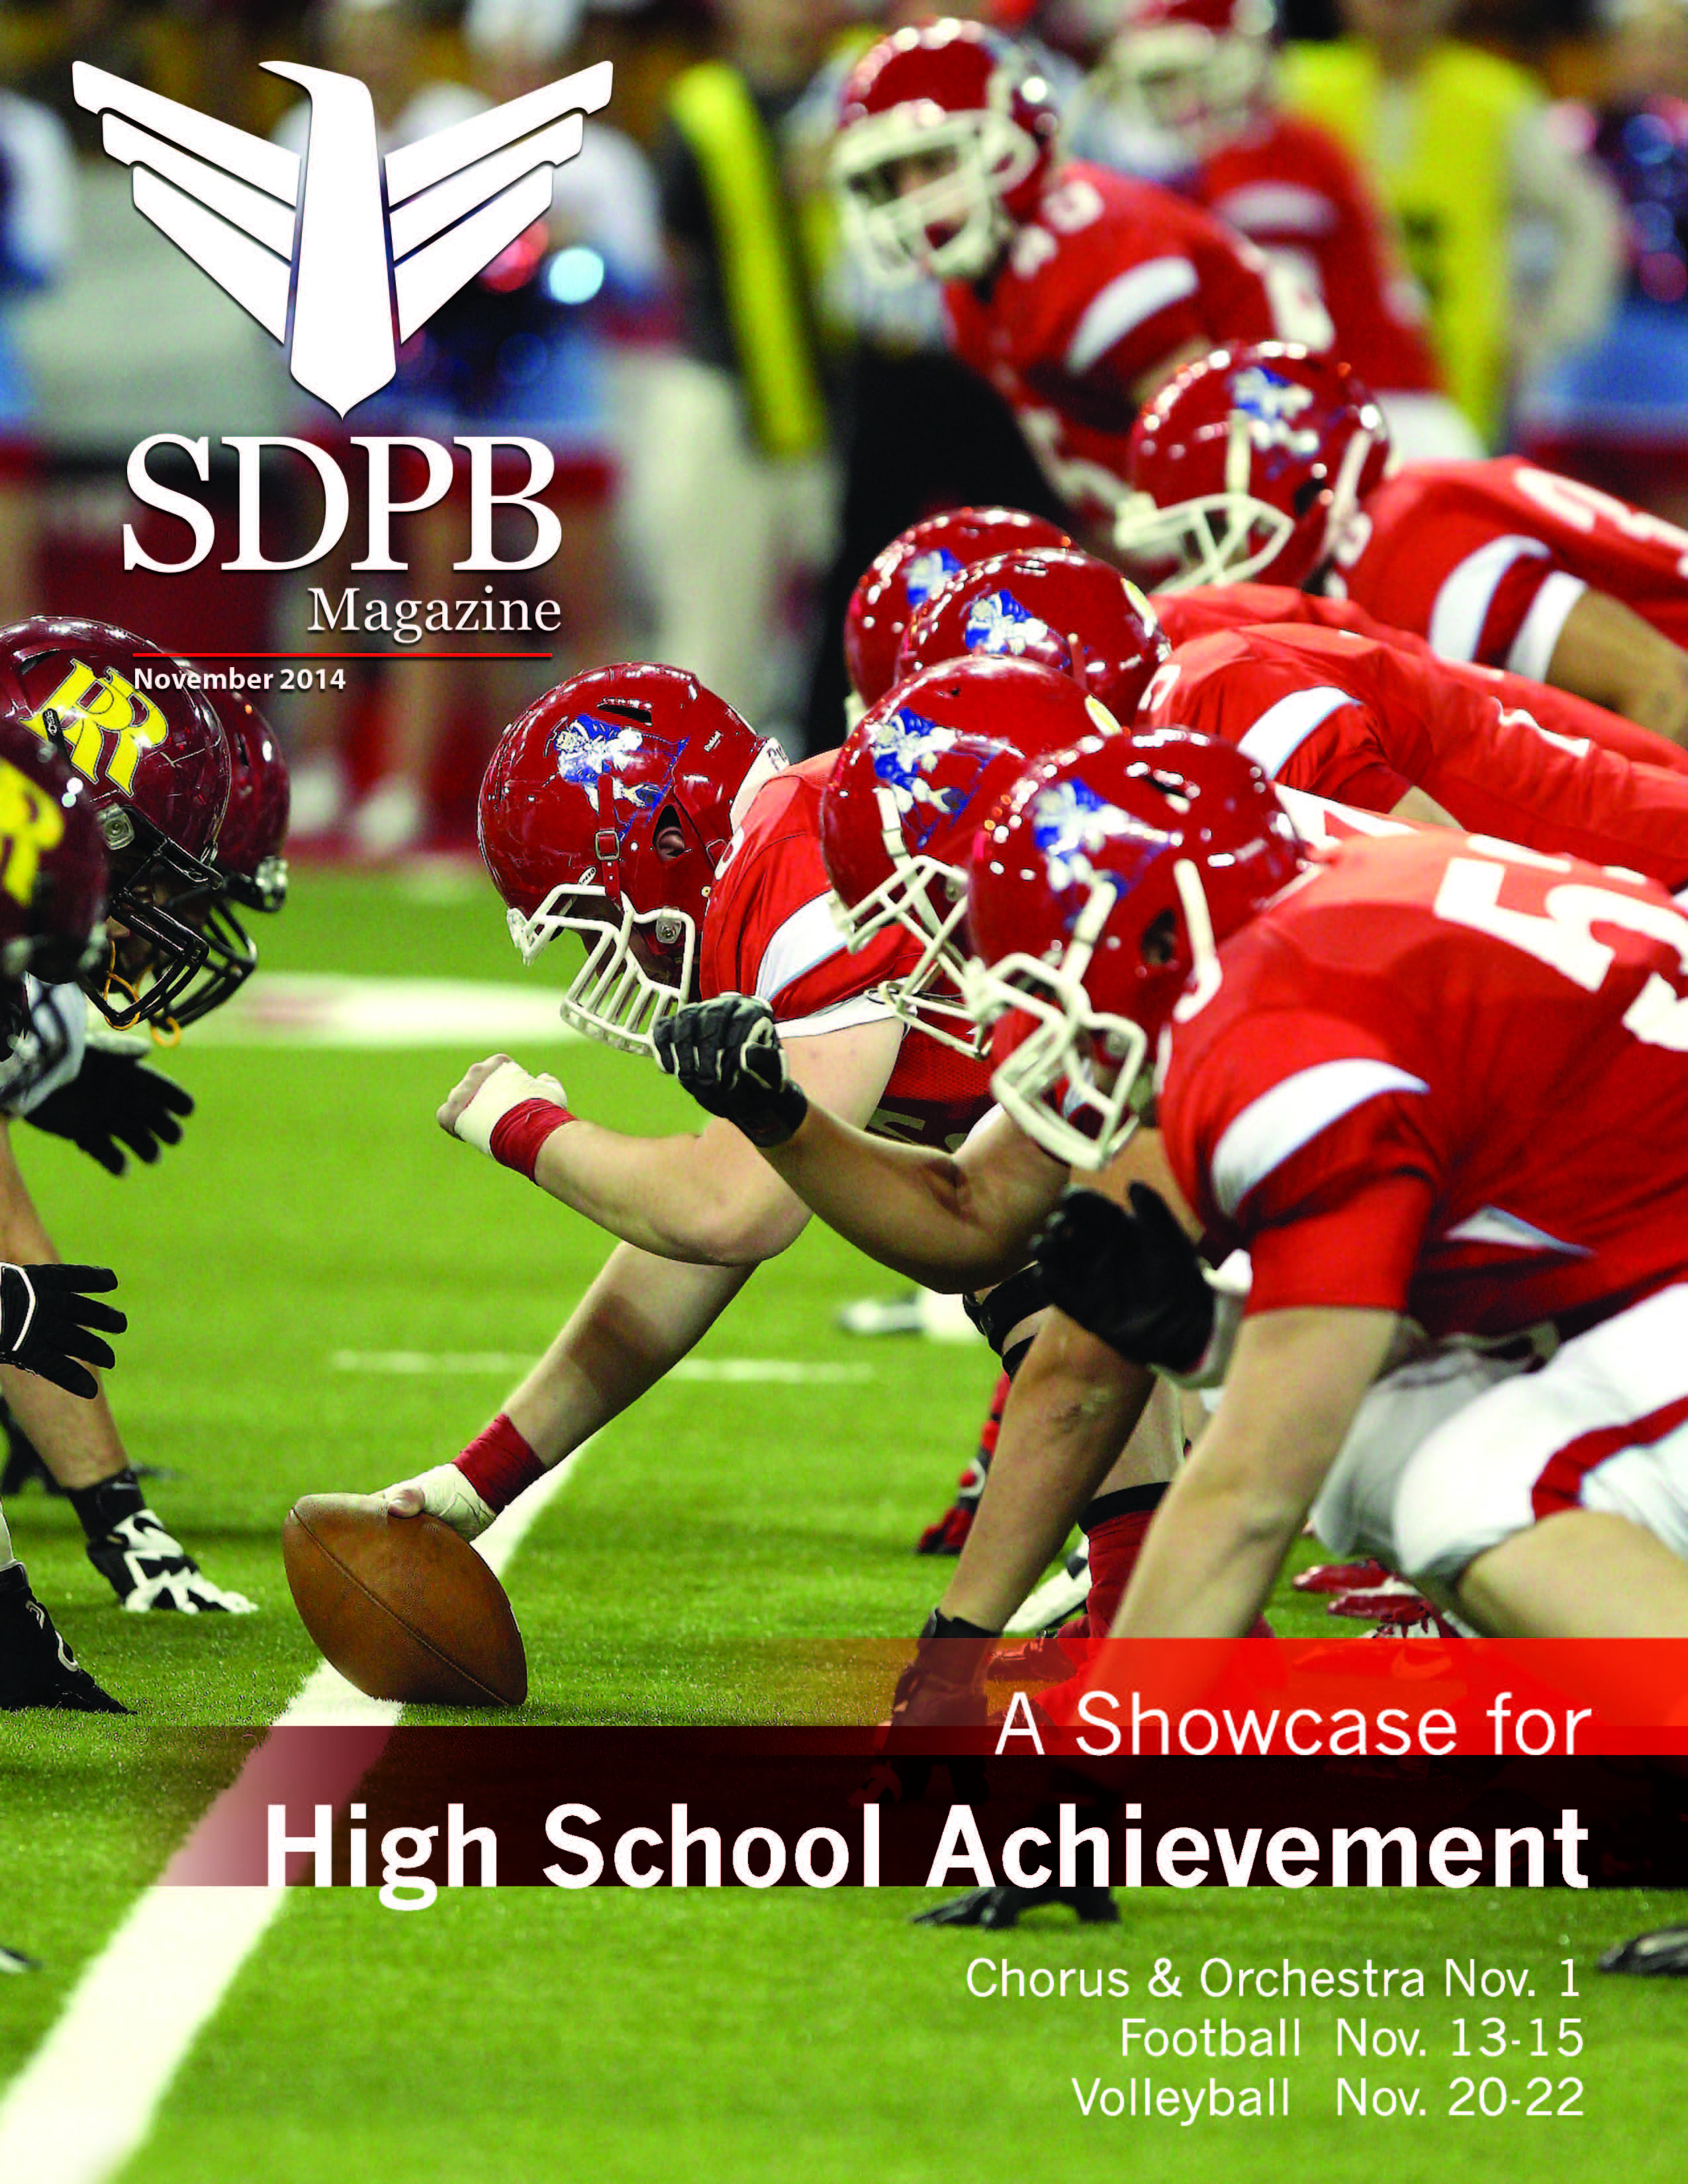 image of the sdpb magazine cover